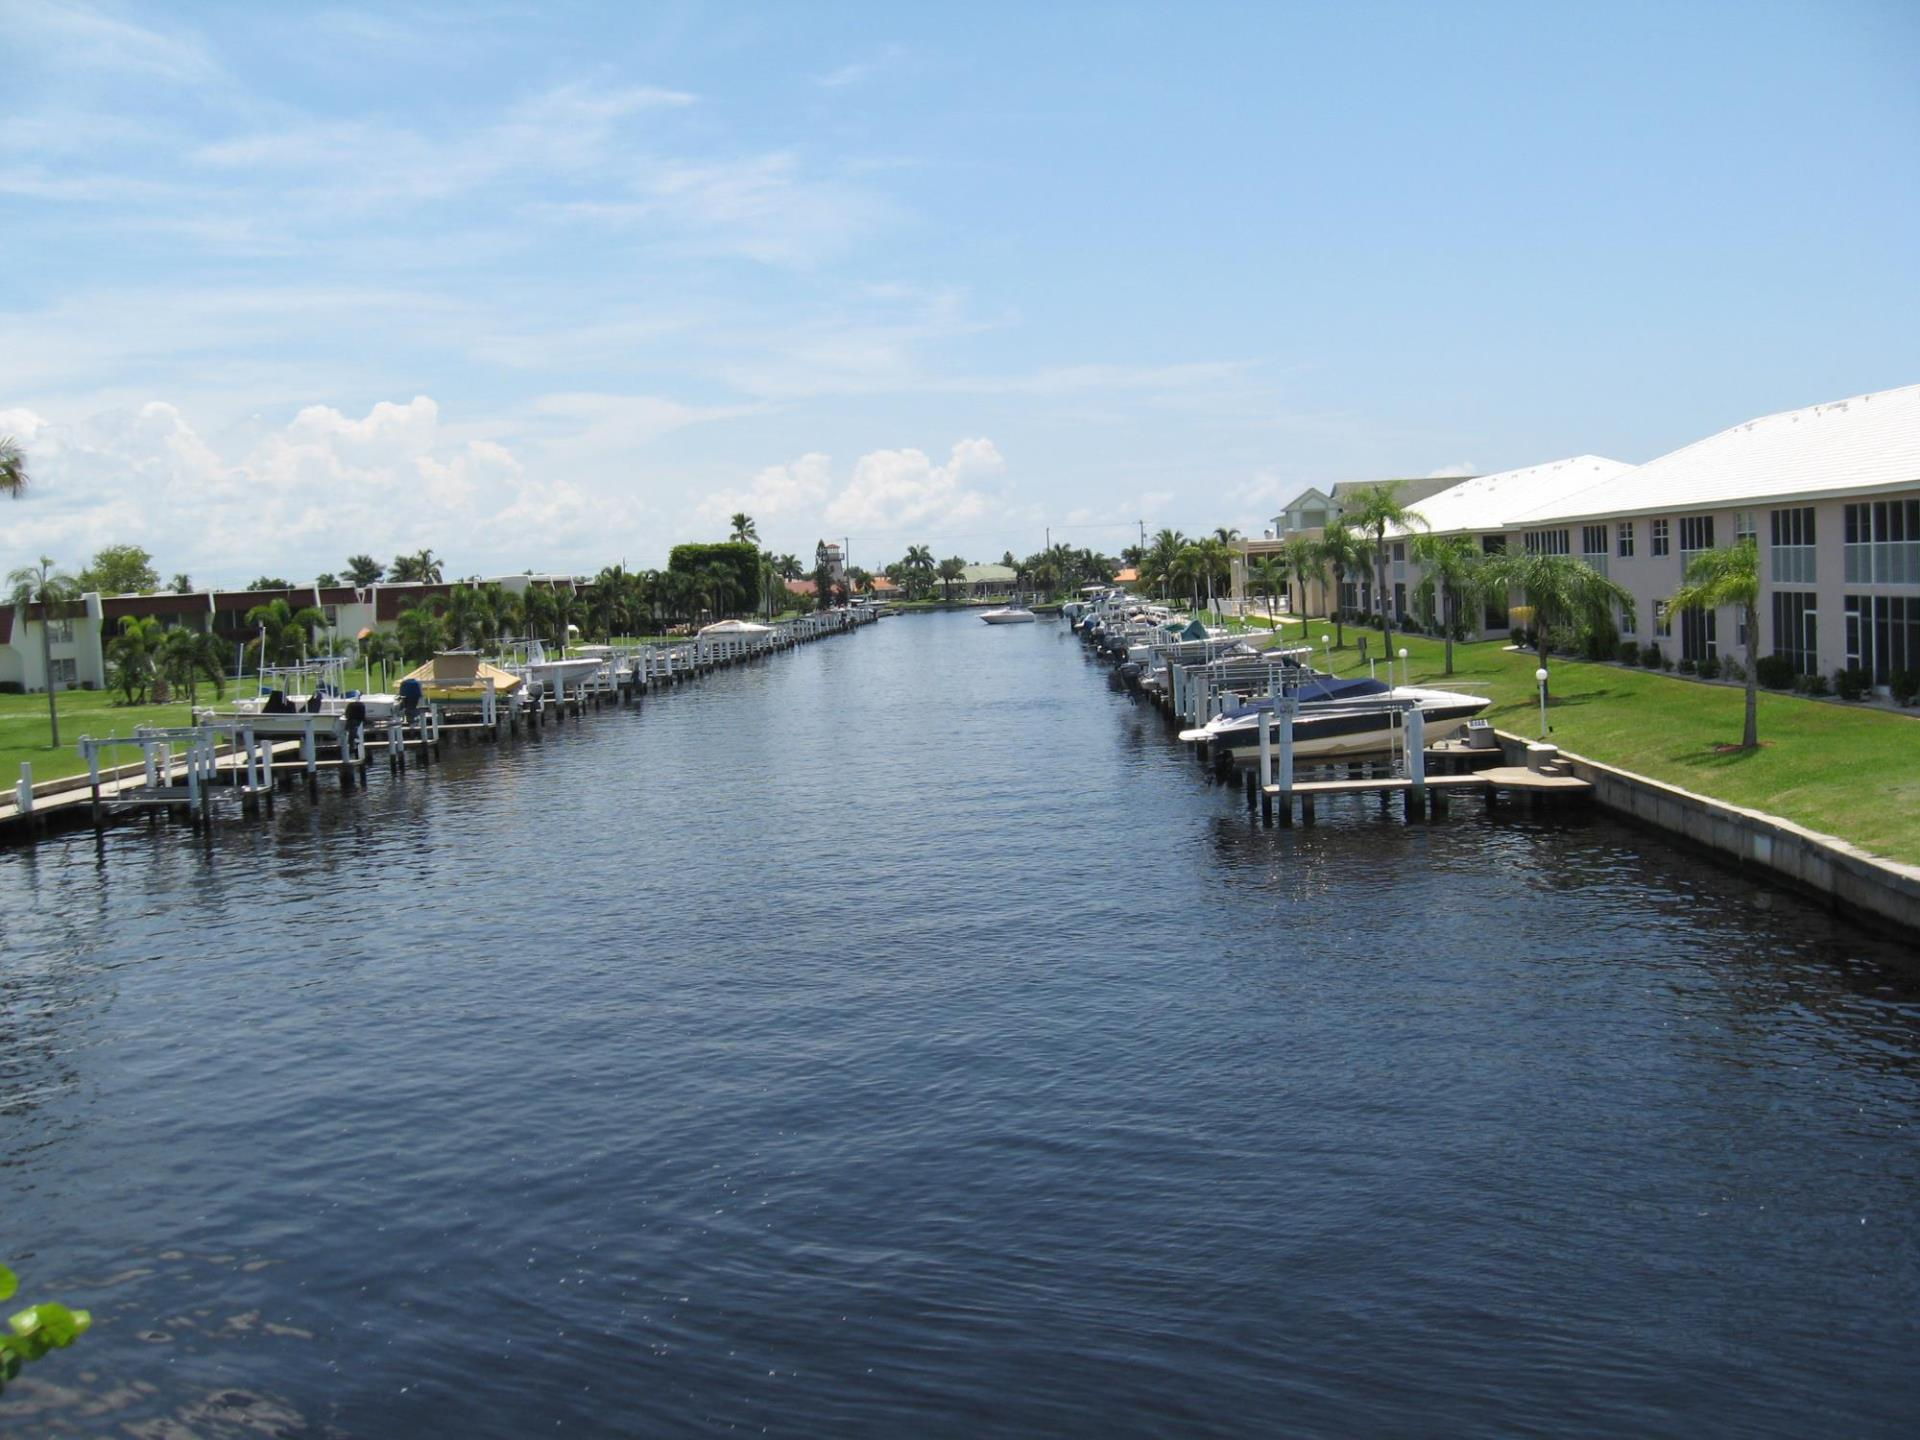 Image of canal with boats docked. Homes in background.